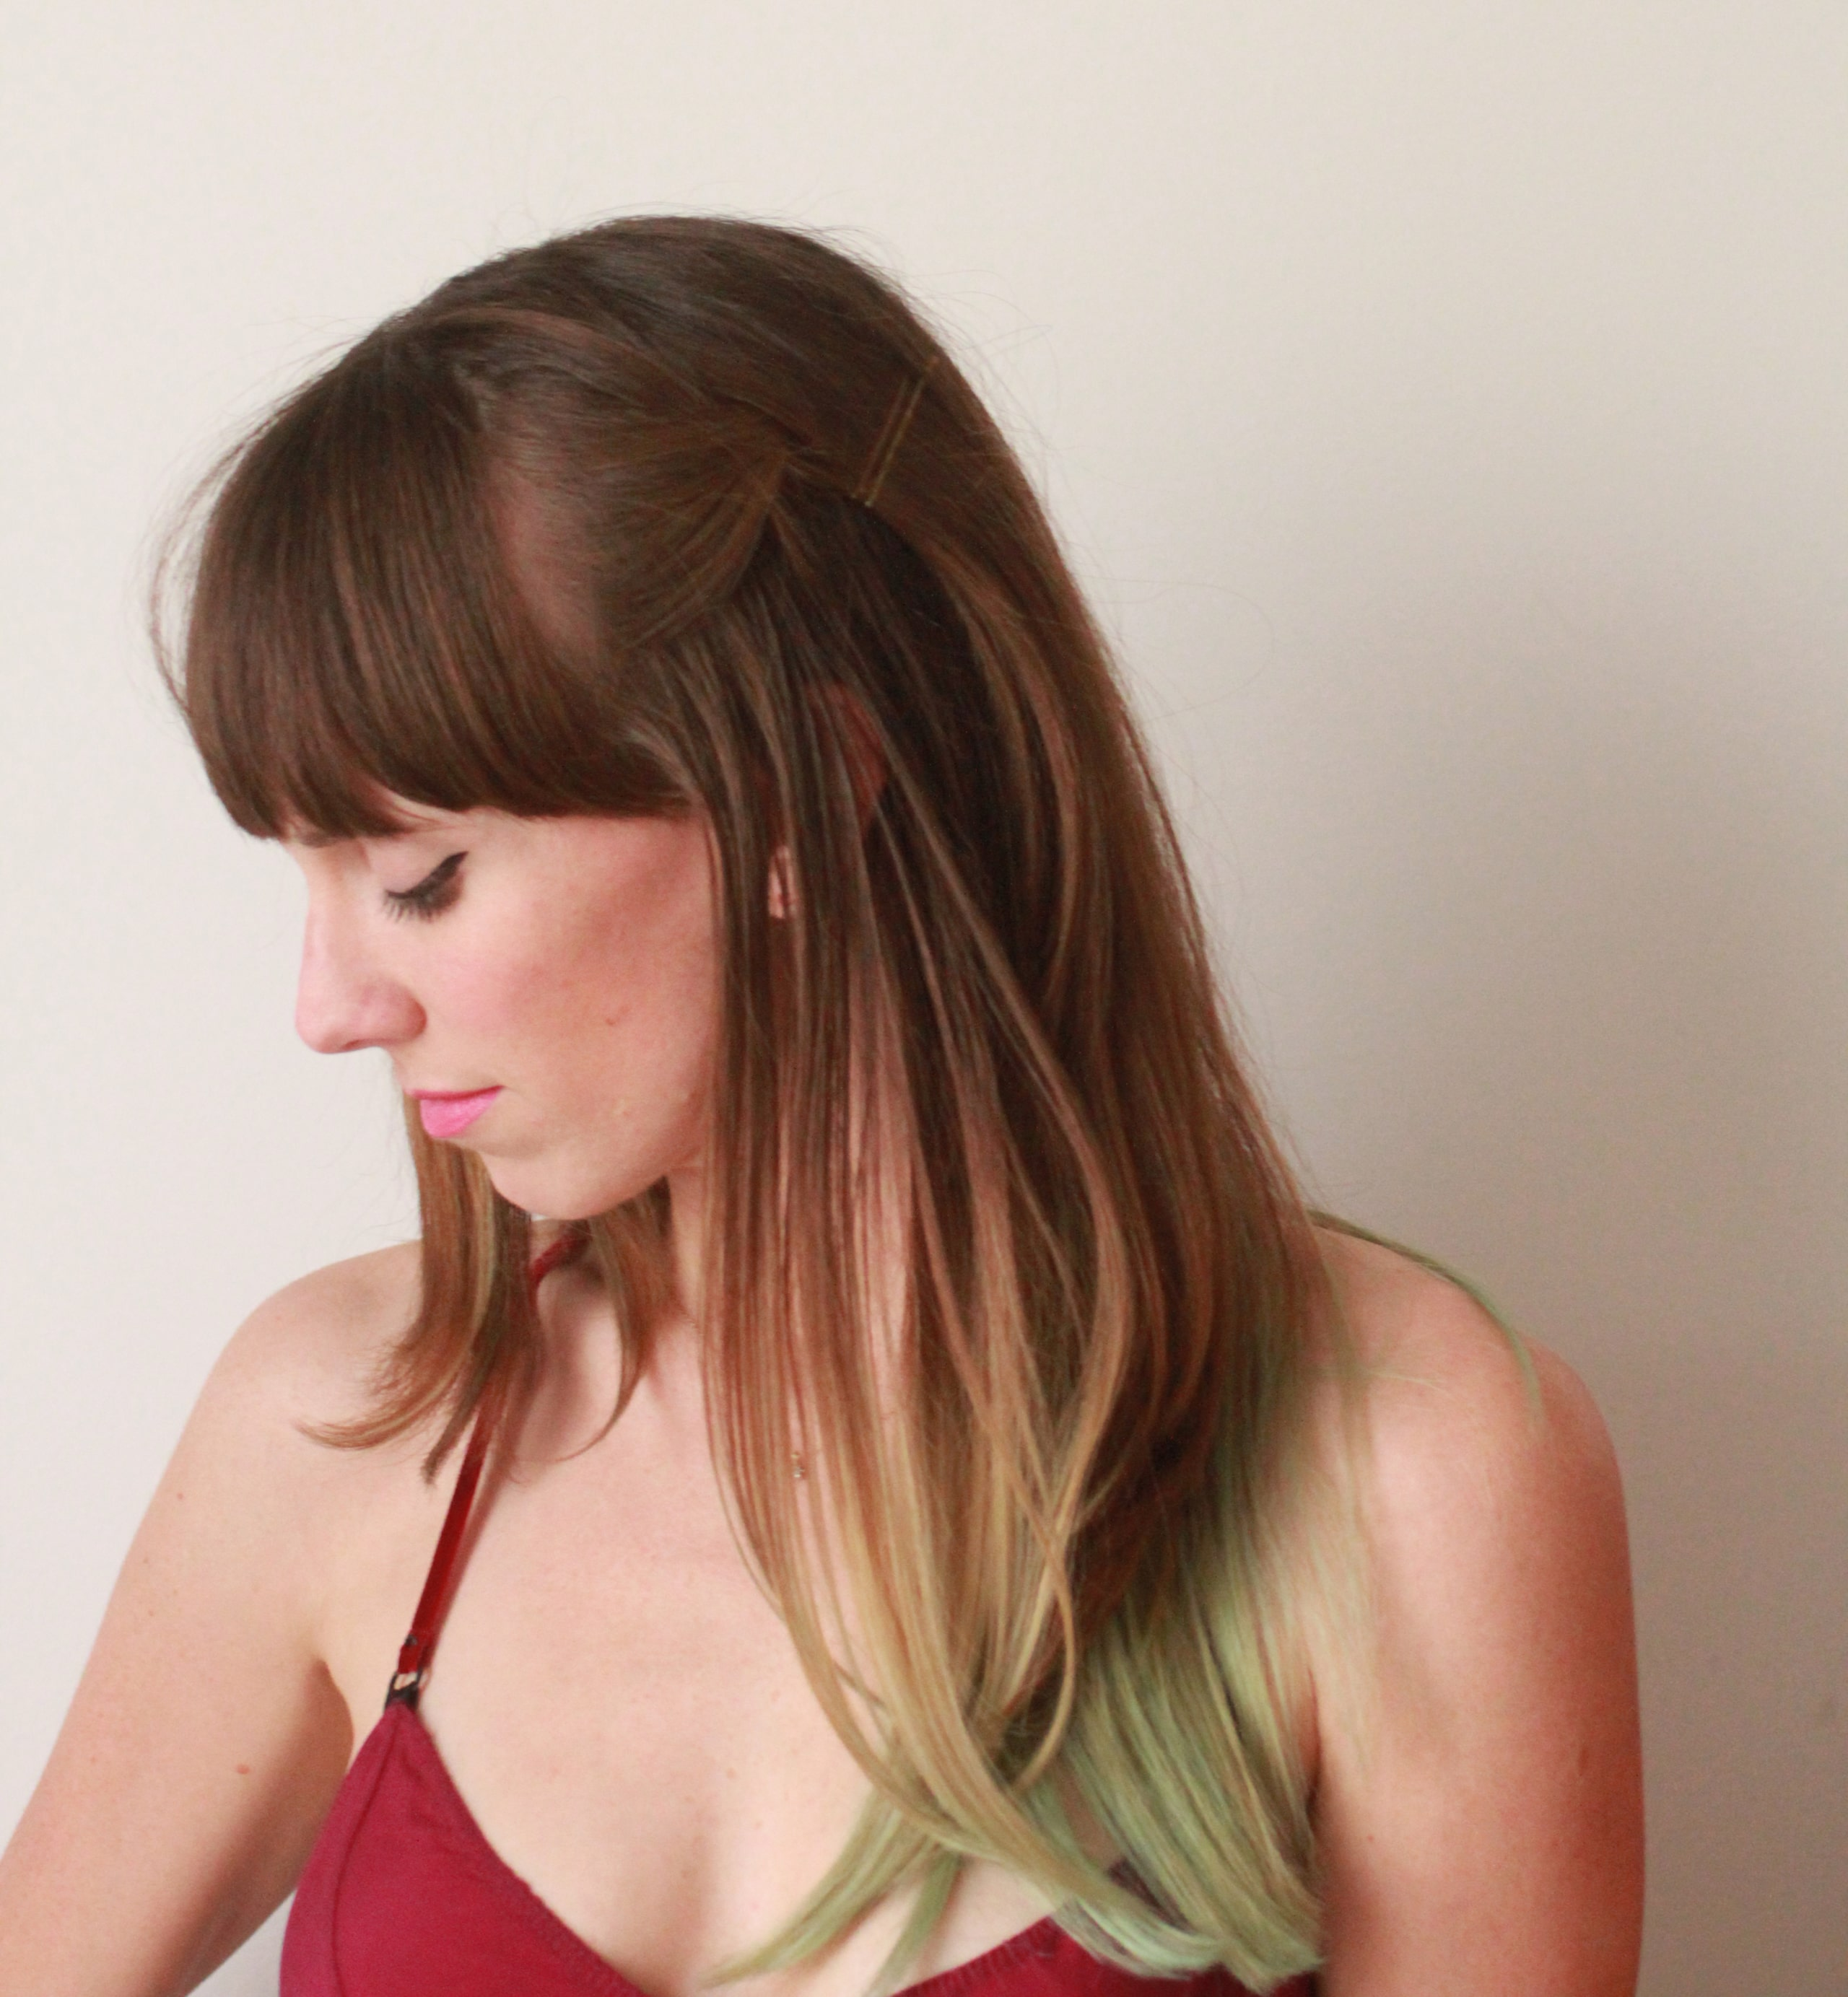 How to Dye Your Hair With Food Coloring: A Non-Toxic ...